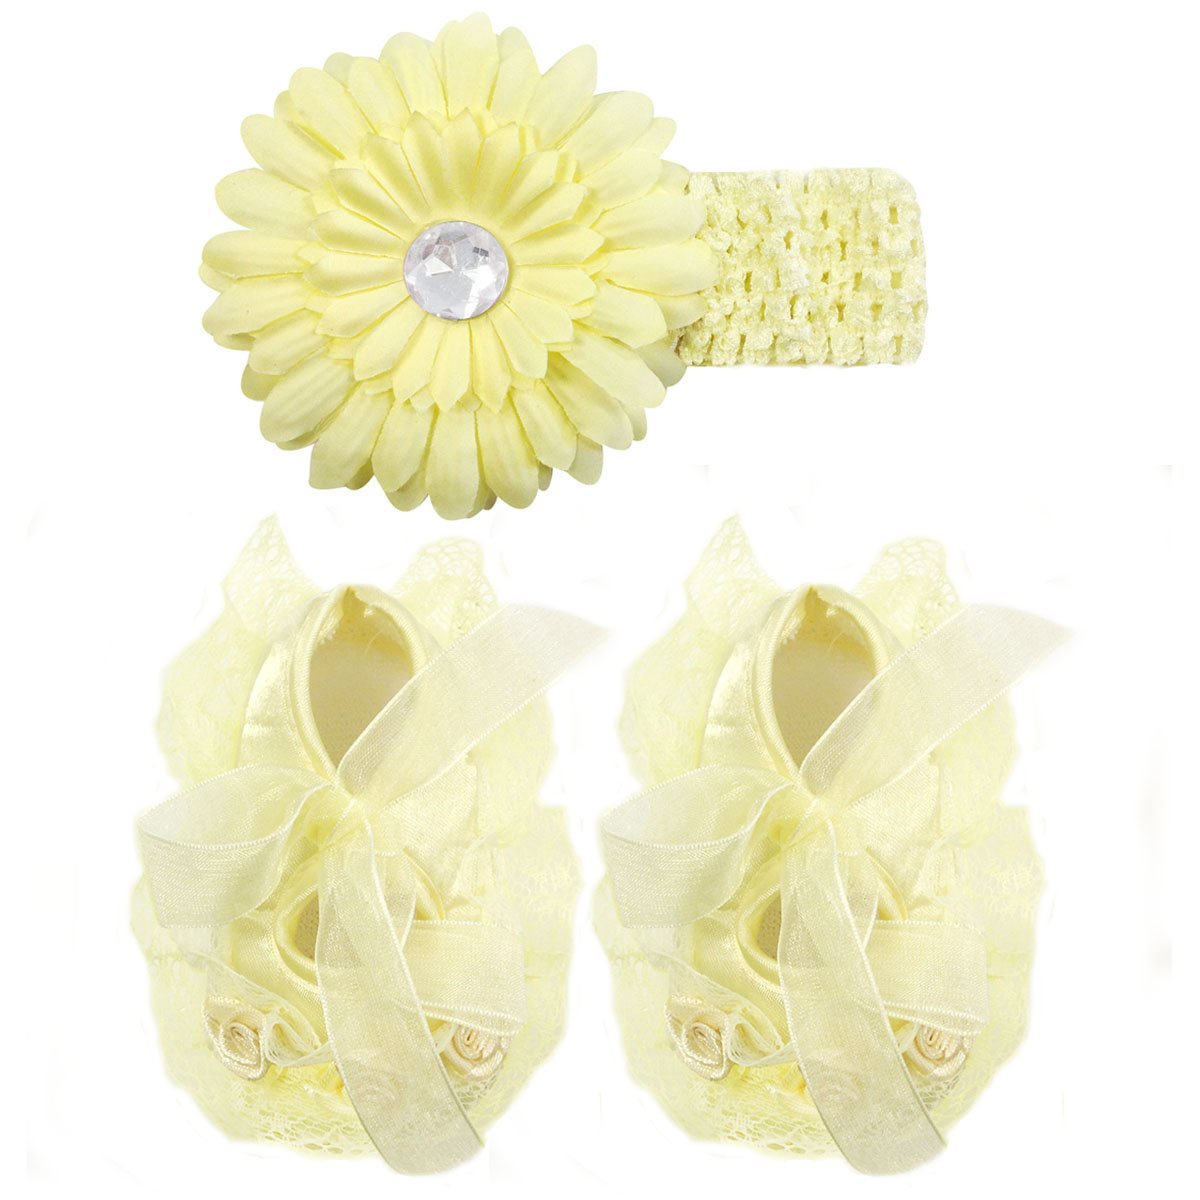 Wrapables Floral and Lace Keepsake Shoes and Headband Set, Yellow Size 12